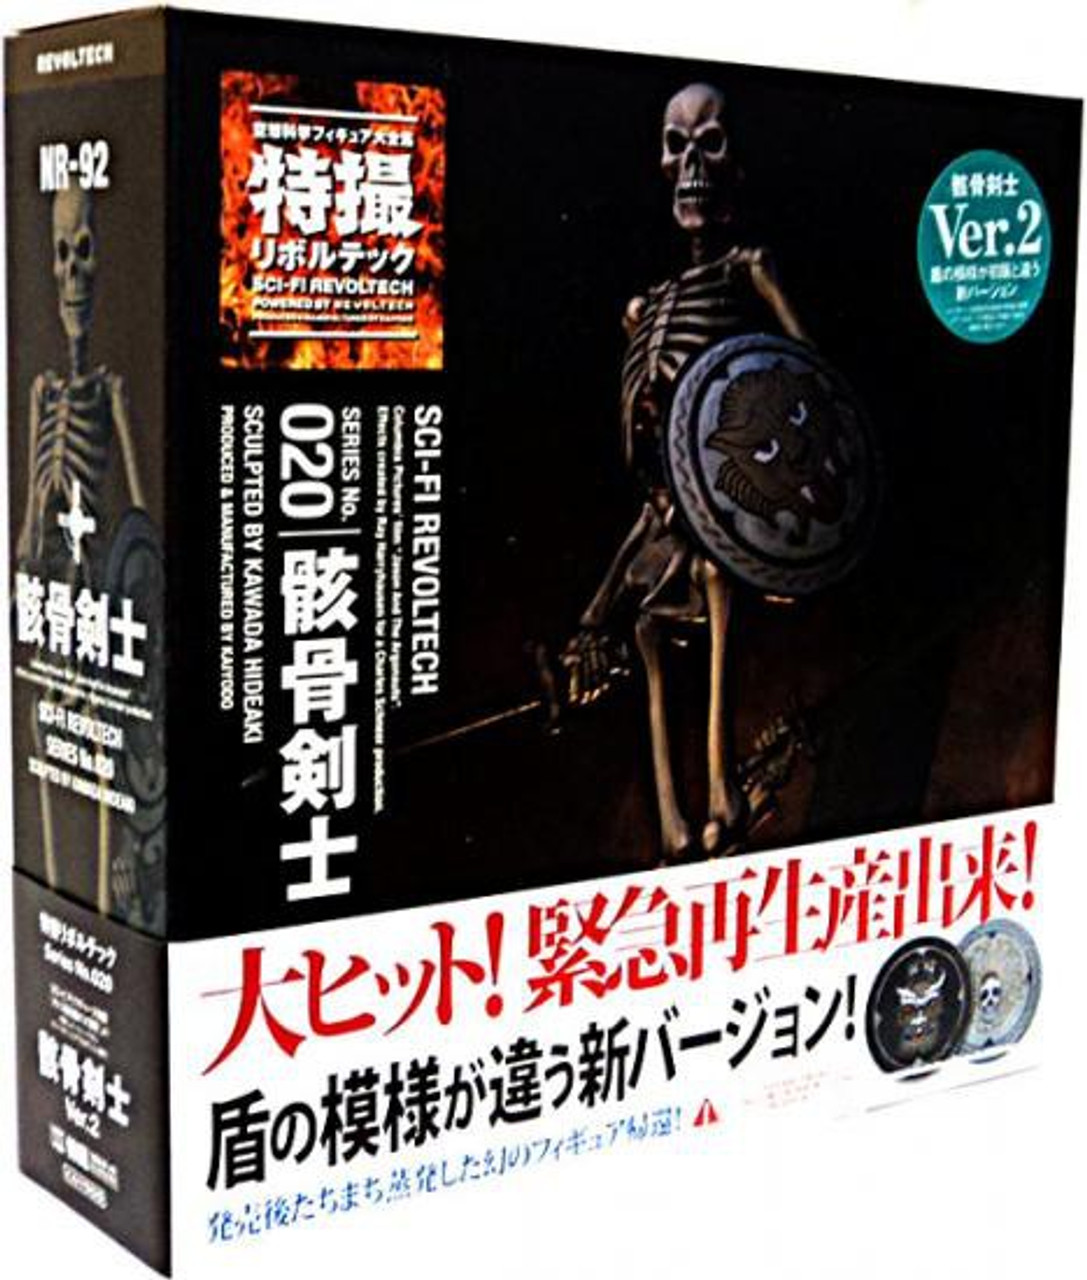 Jason & the Argonauts Sci-Fi Revoltech Skeleton Warrior Action Figure #020